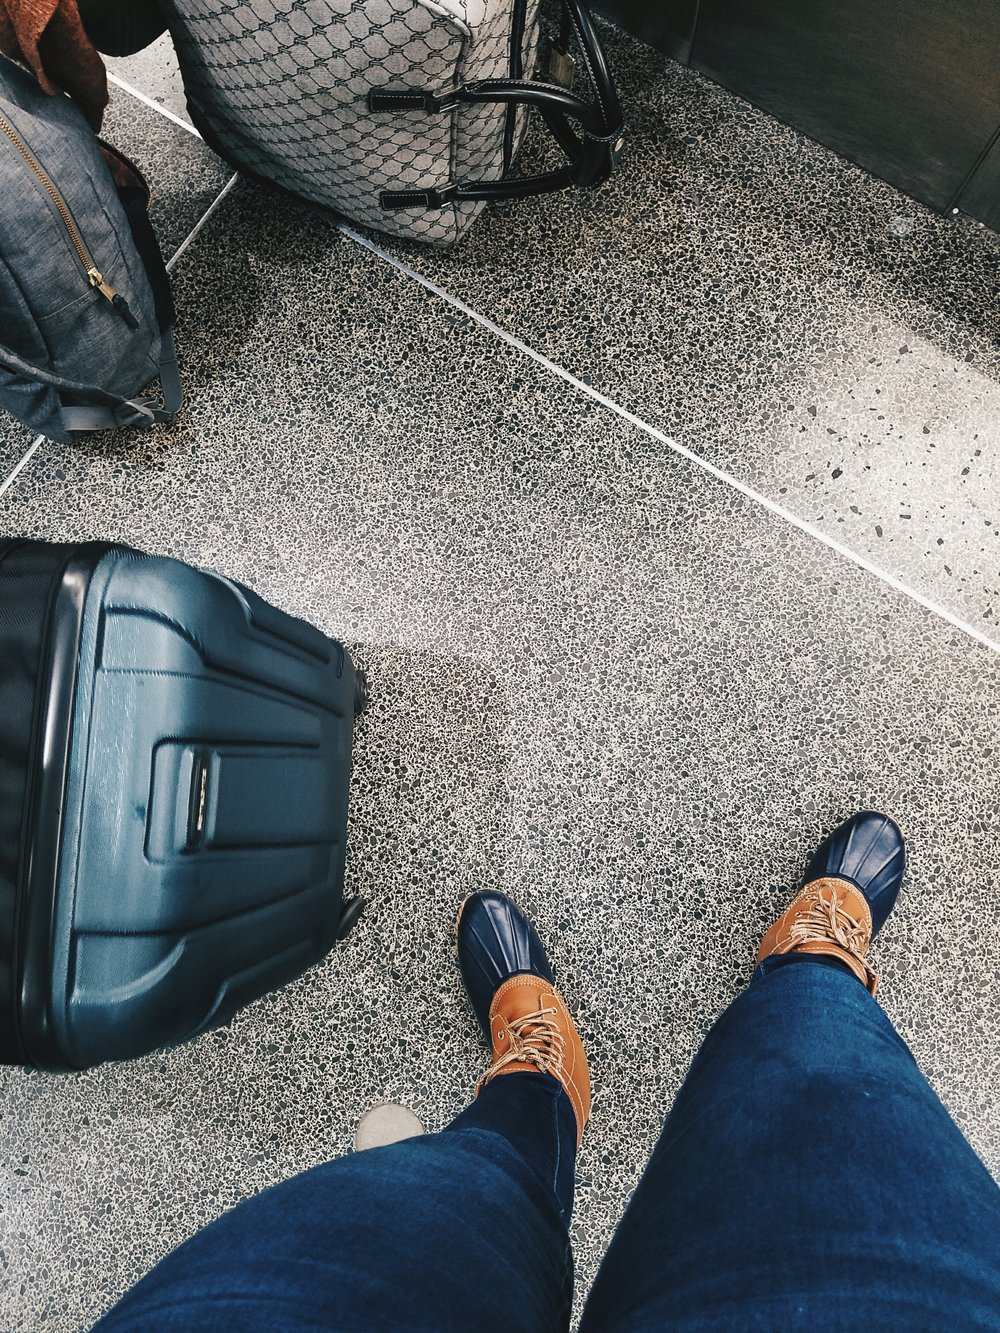 Friendly reminder that you'll have to take off your shoes as part of security. If weather permits, sandals make a much better option than rain boots.